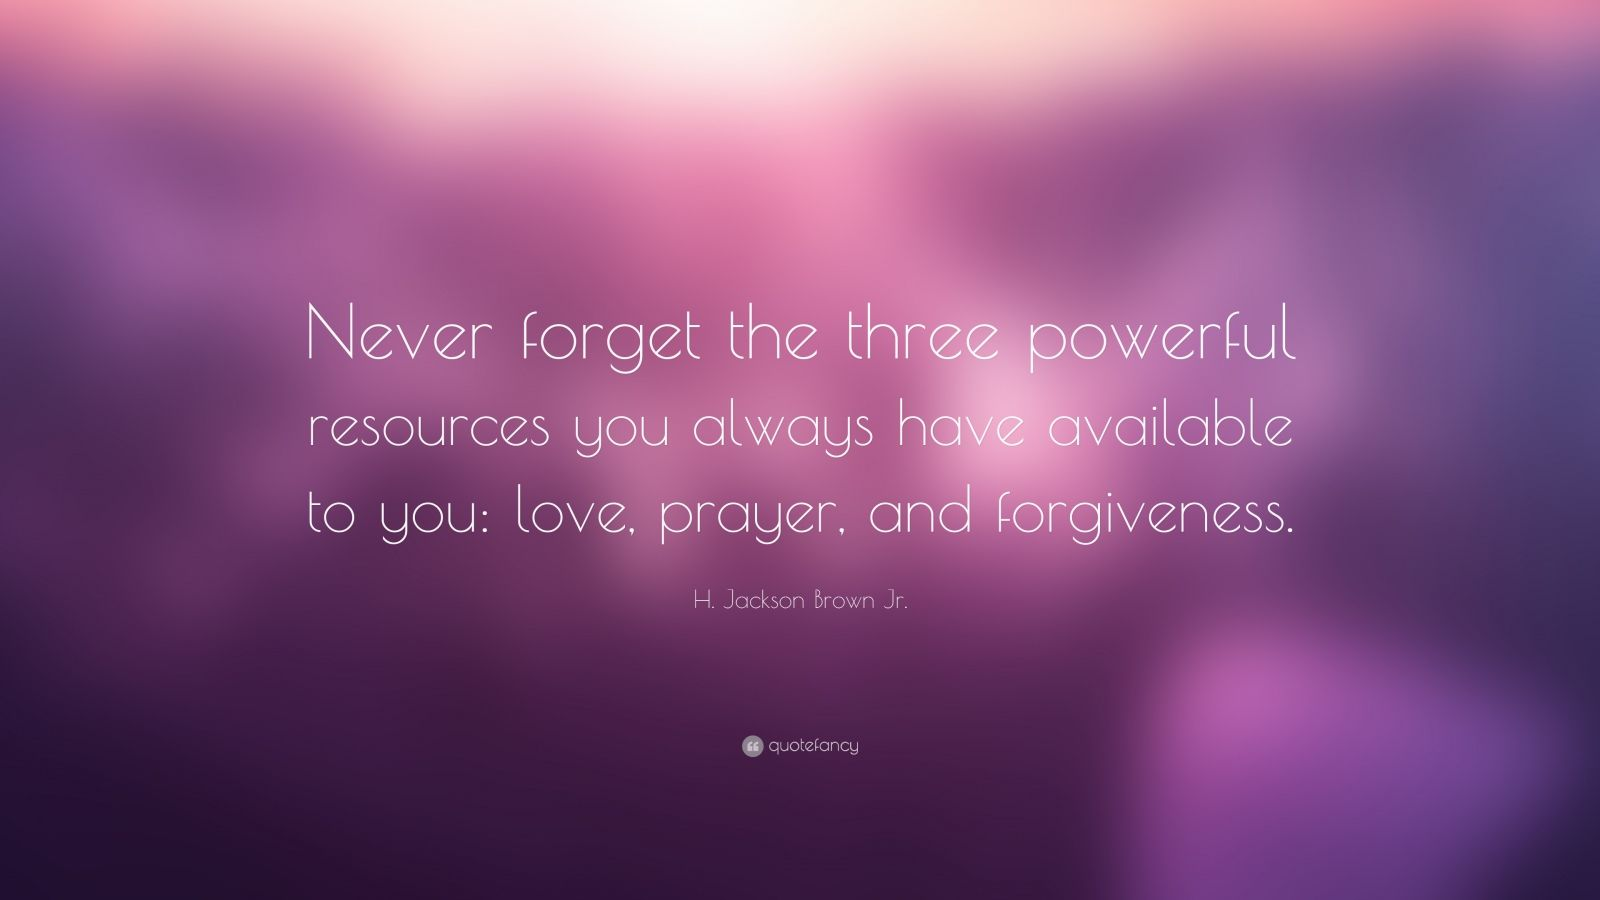 """H. Jackson Brown Jr. Quote: """"Never forget the three powerful resources you always have available to you: love, prayer, and forgiveness."""""""